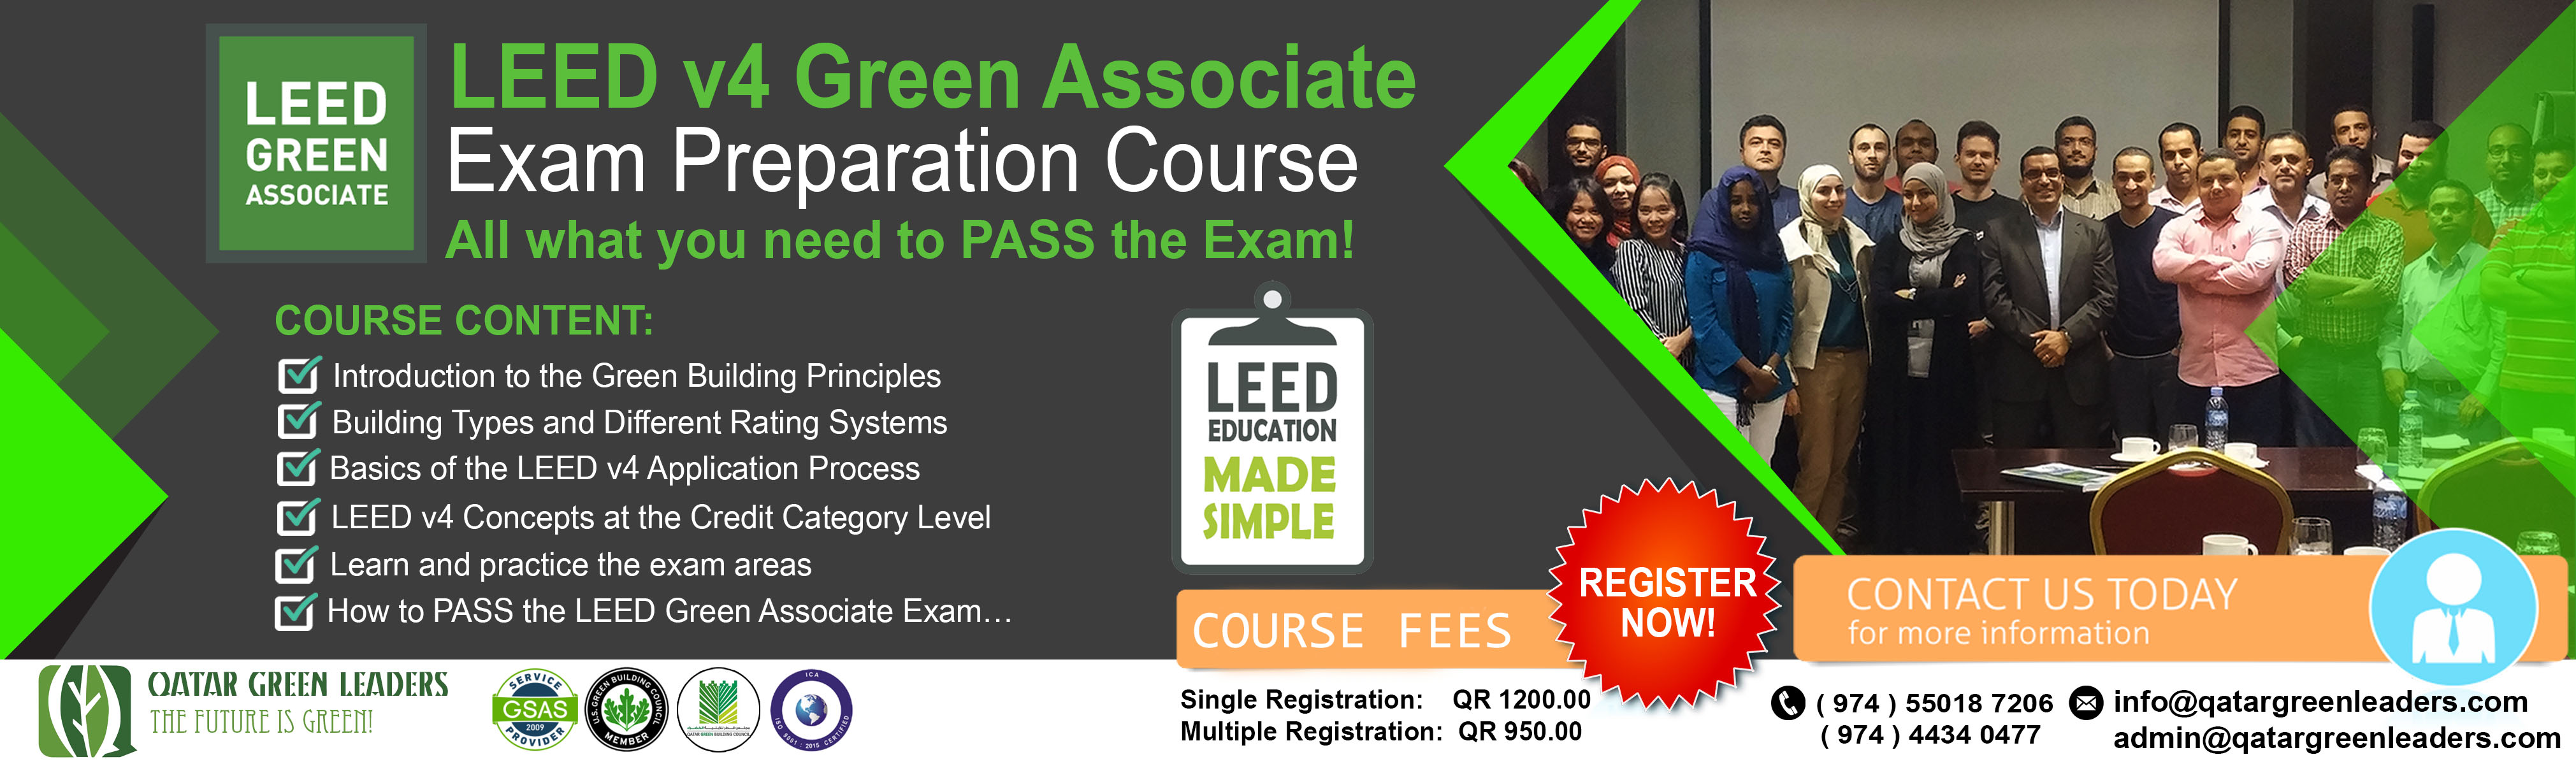 leed-ga-exam-prep-course